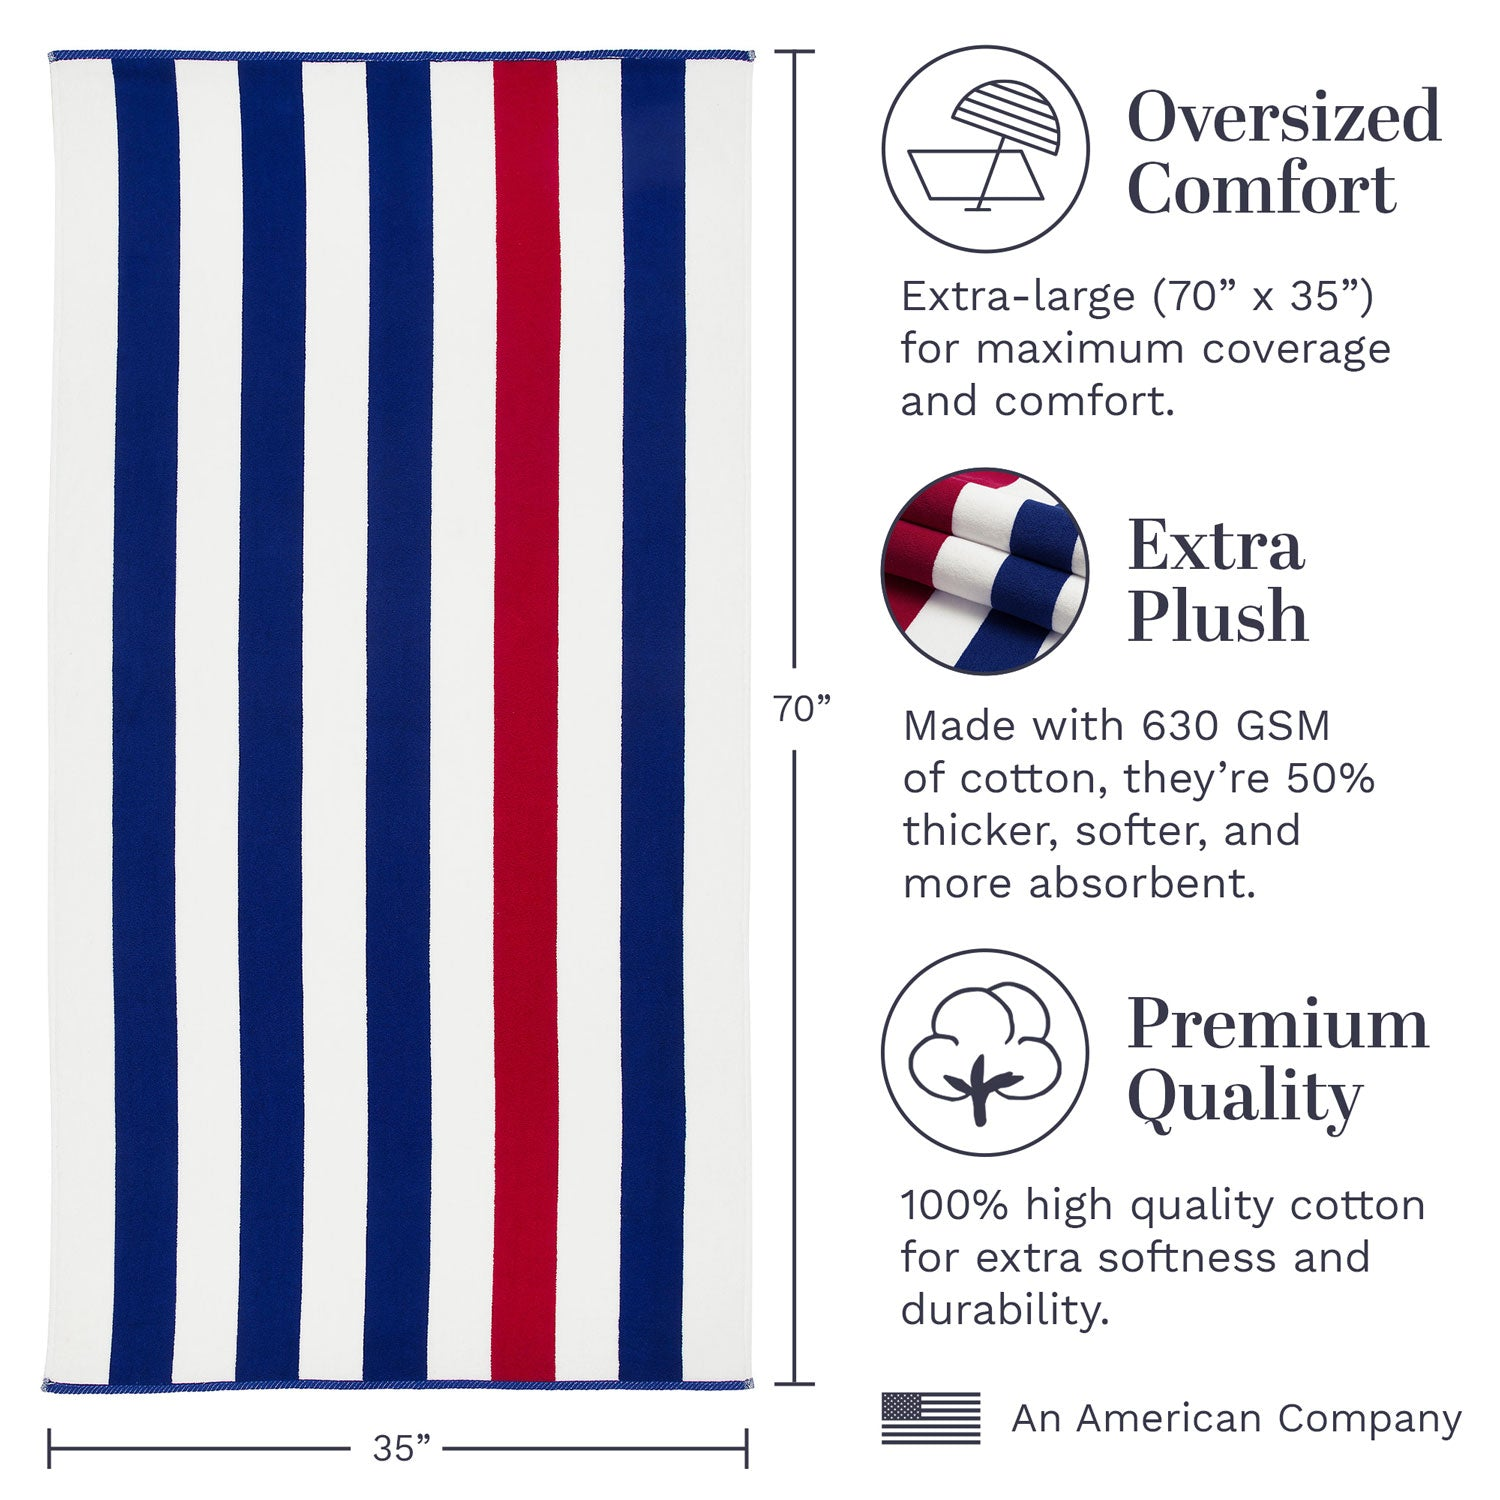 Infographic of red, white, and blue cabana beach towel highlighting that it's extra plush, premium quality, and oversized.